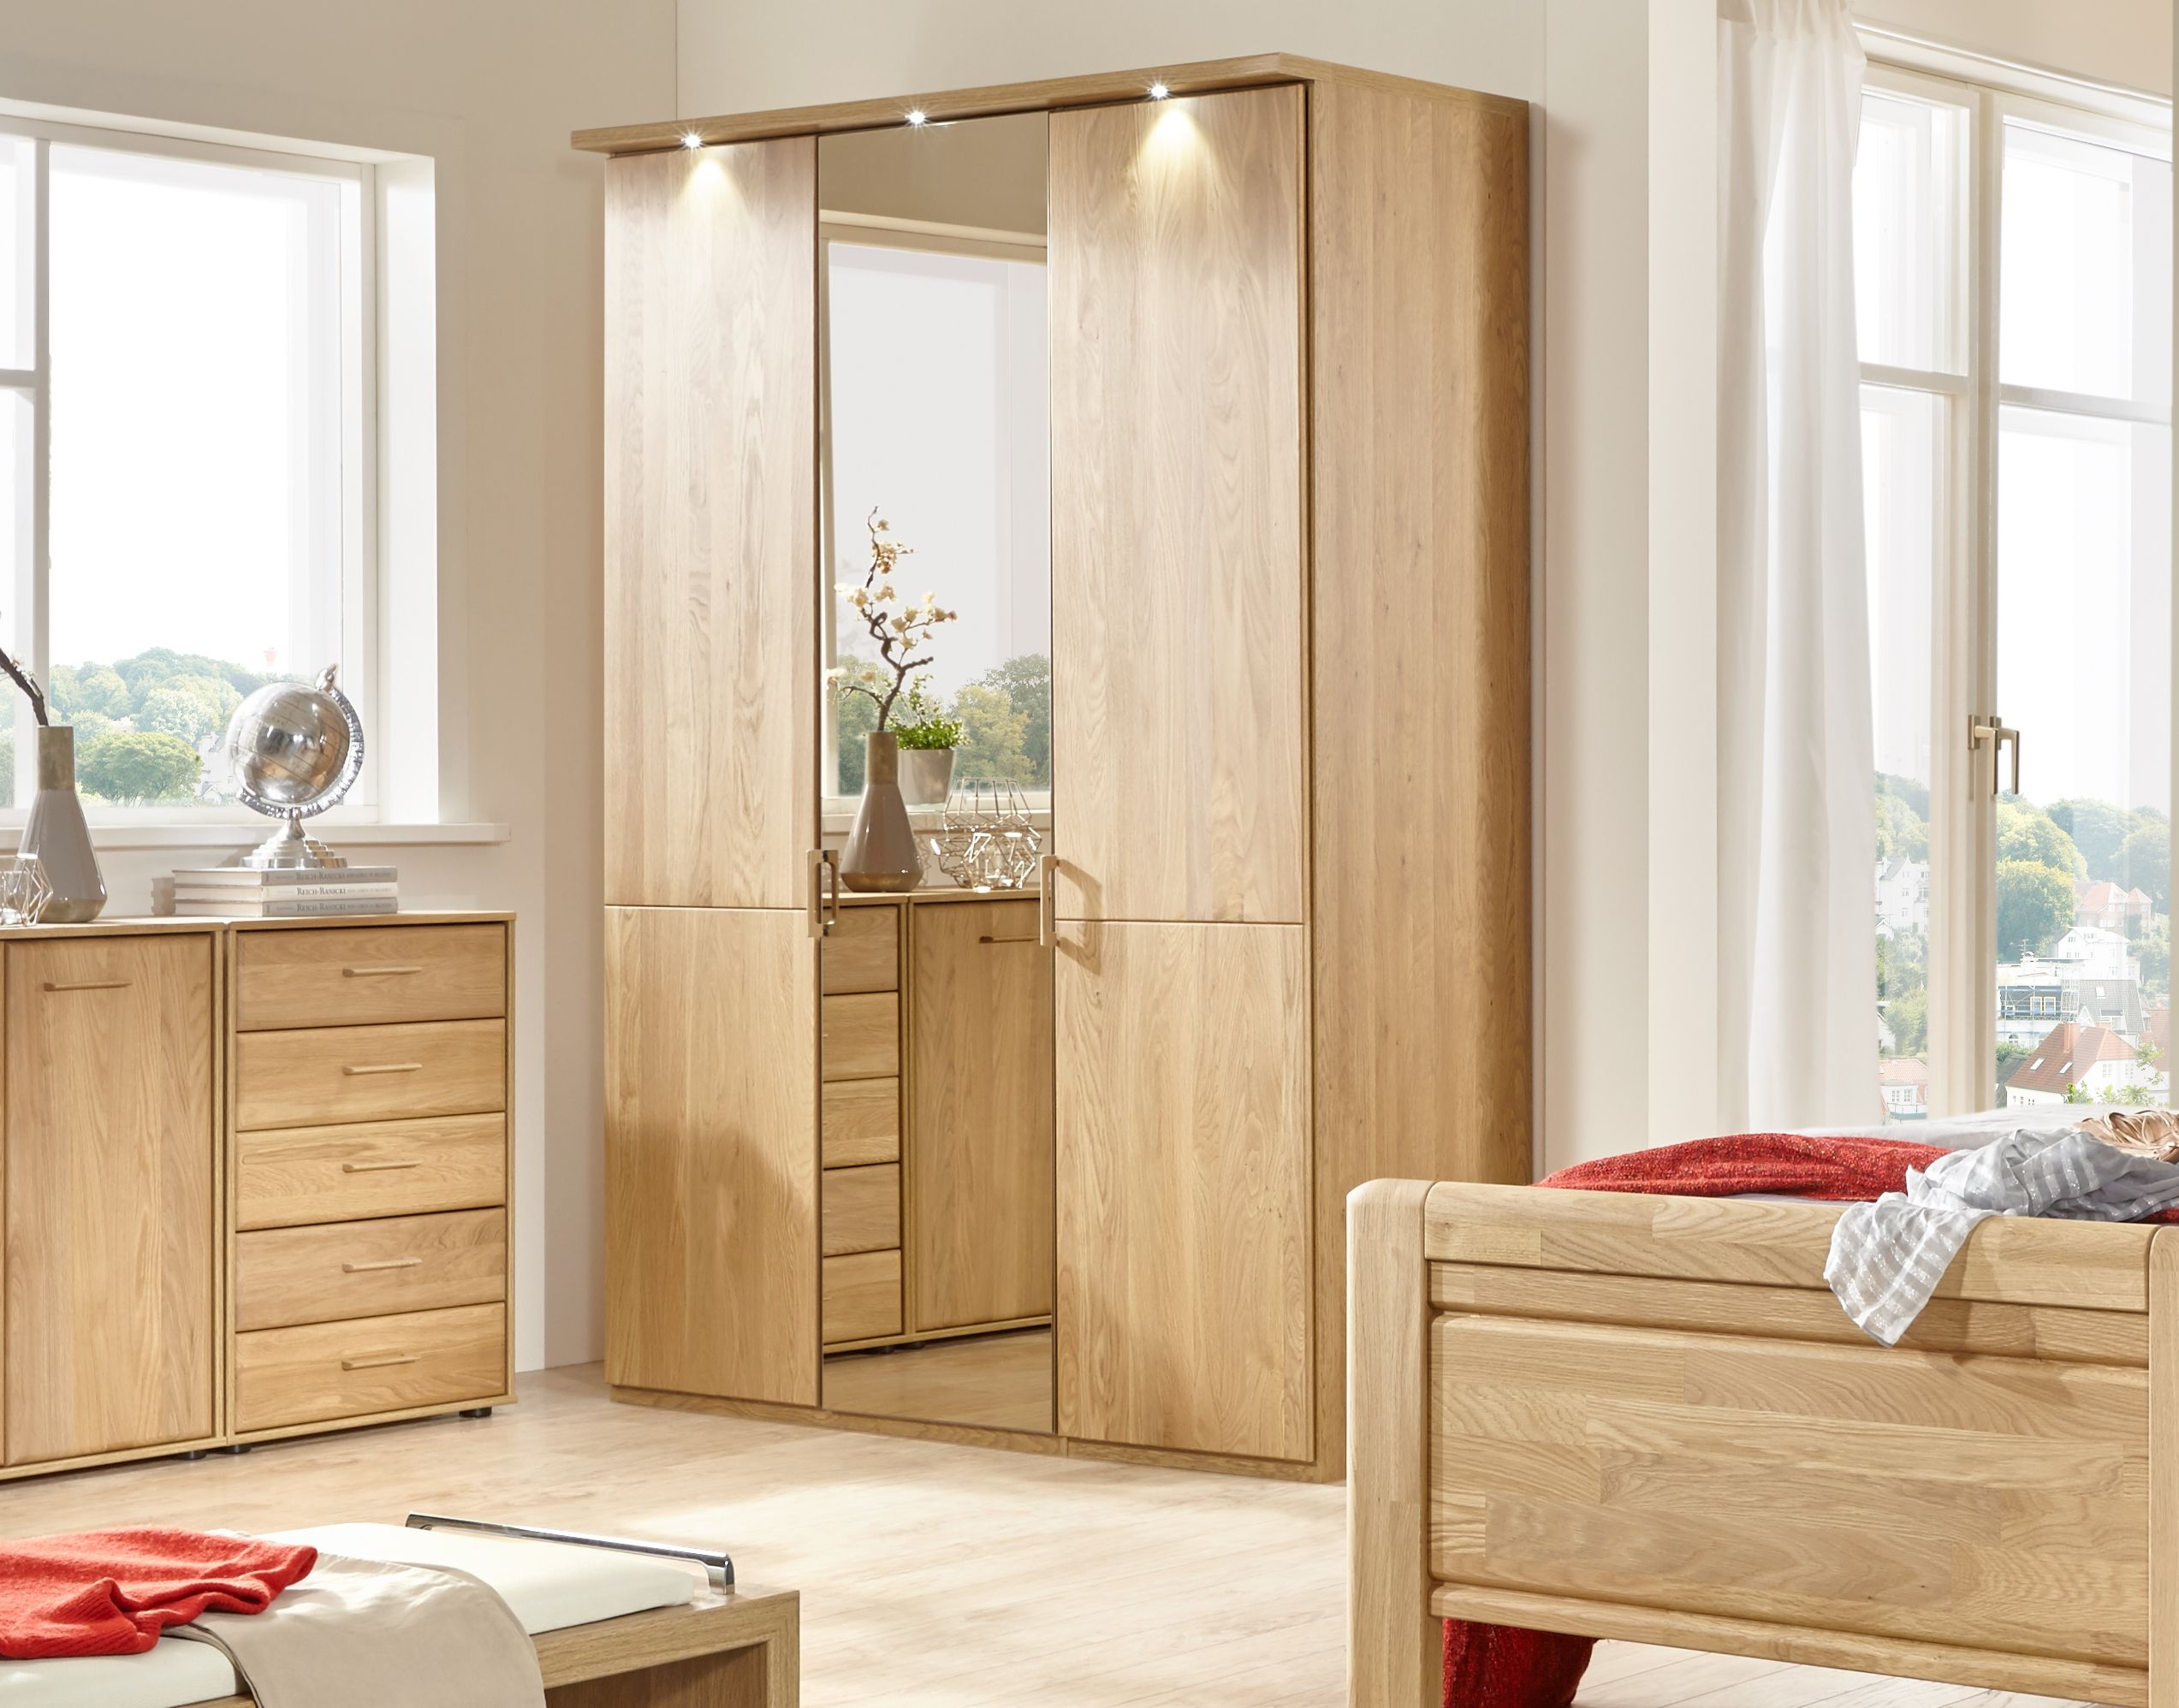 Wiemann Lido 5 Door 1 Mirror Wardrobe in Oak - W 250cm